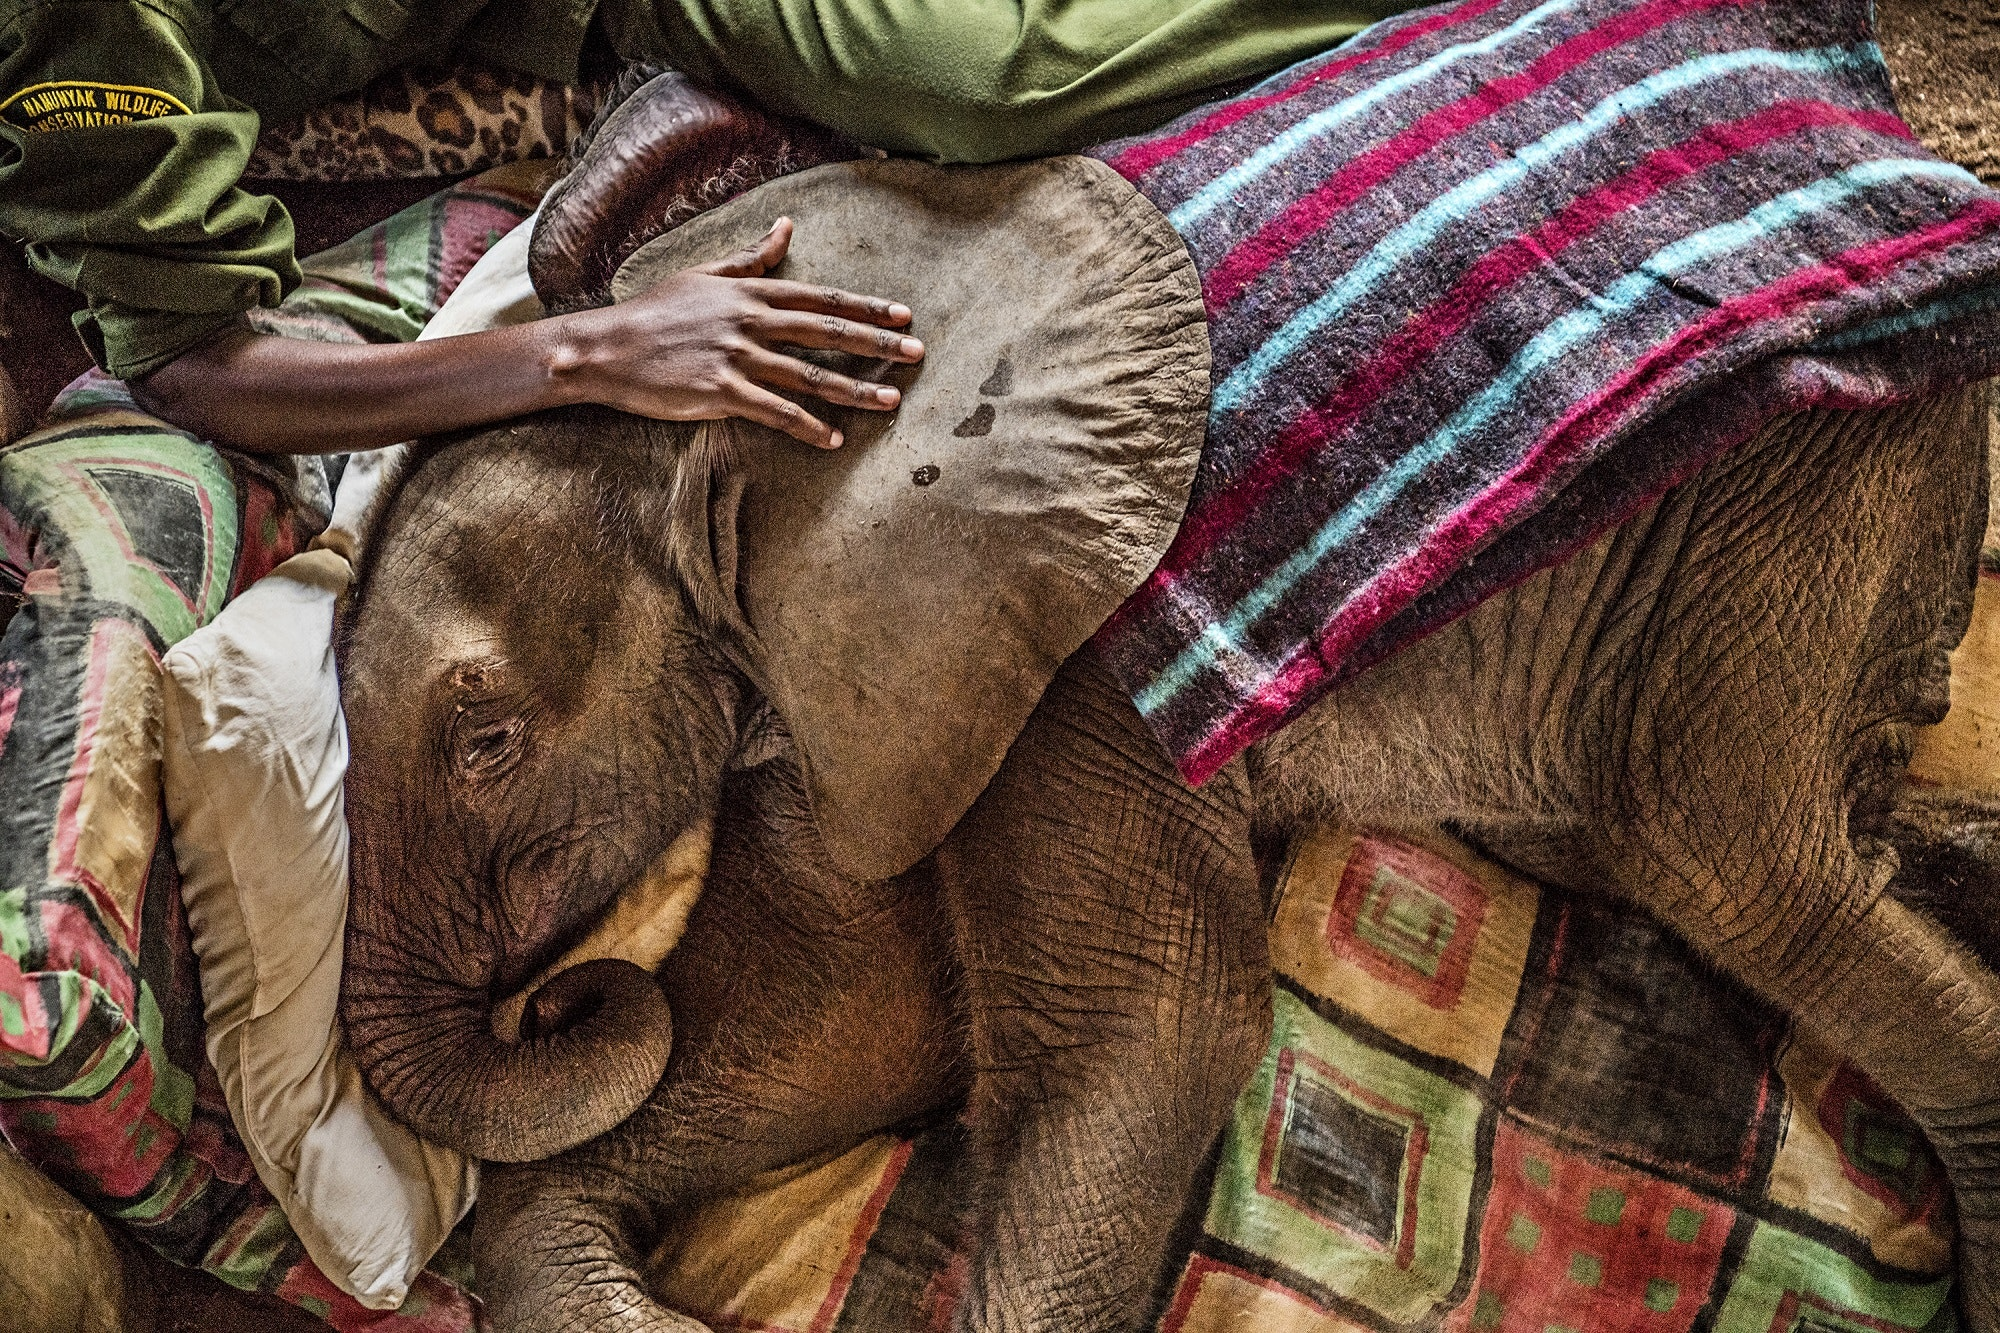 Our honorees include M. Sanjayan, who has dedicated his life to protecting nature and wildlife. Here, Suyian, the first orphaned calf to arrive at the Reteti Elephant Sanctuary in Kenya, is comforted by keeper Mary Lengees.